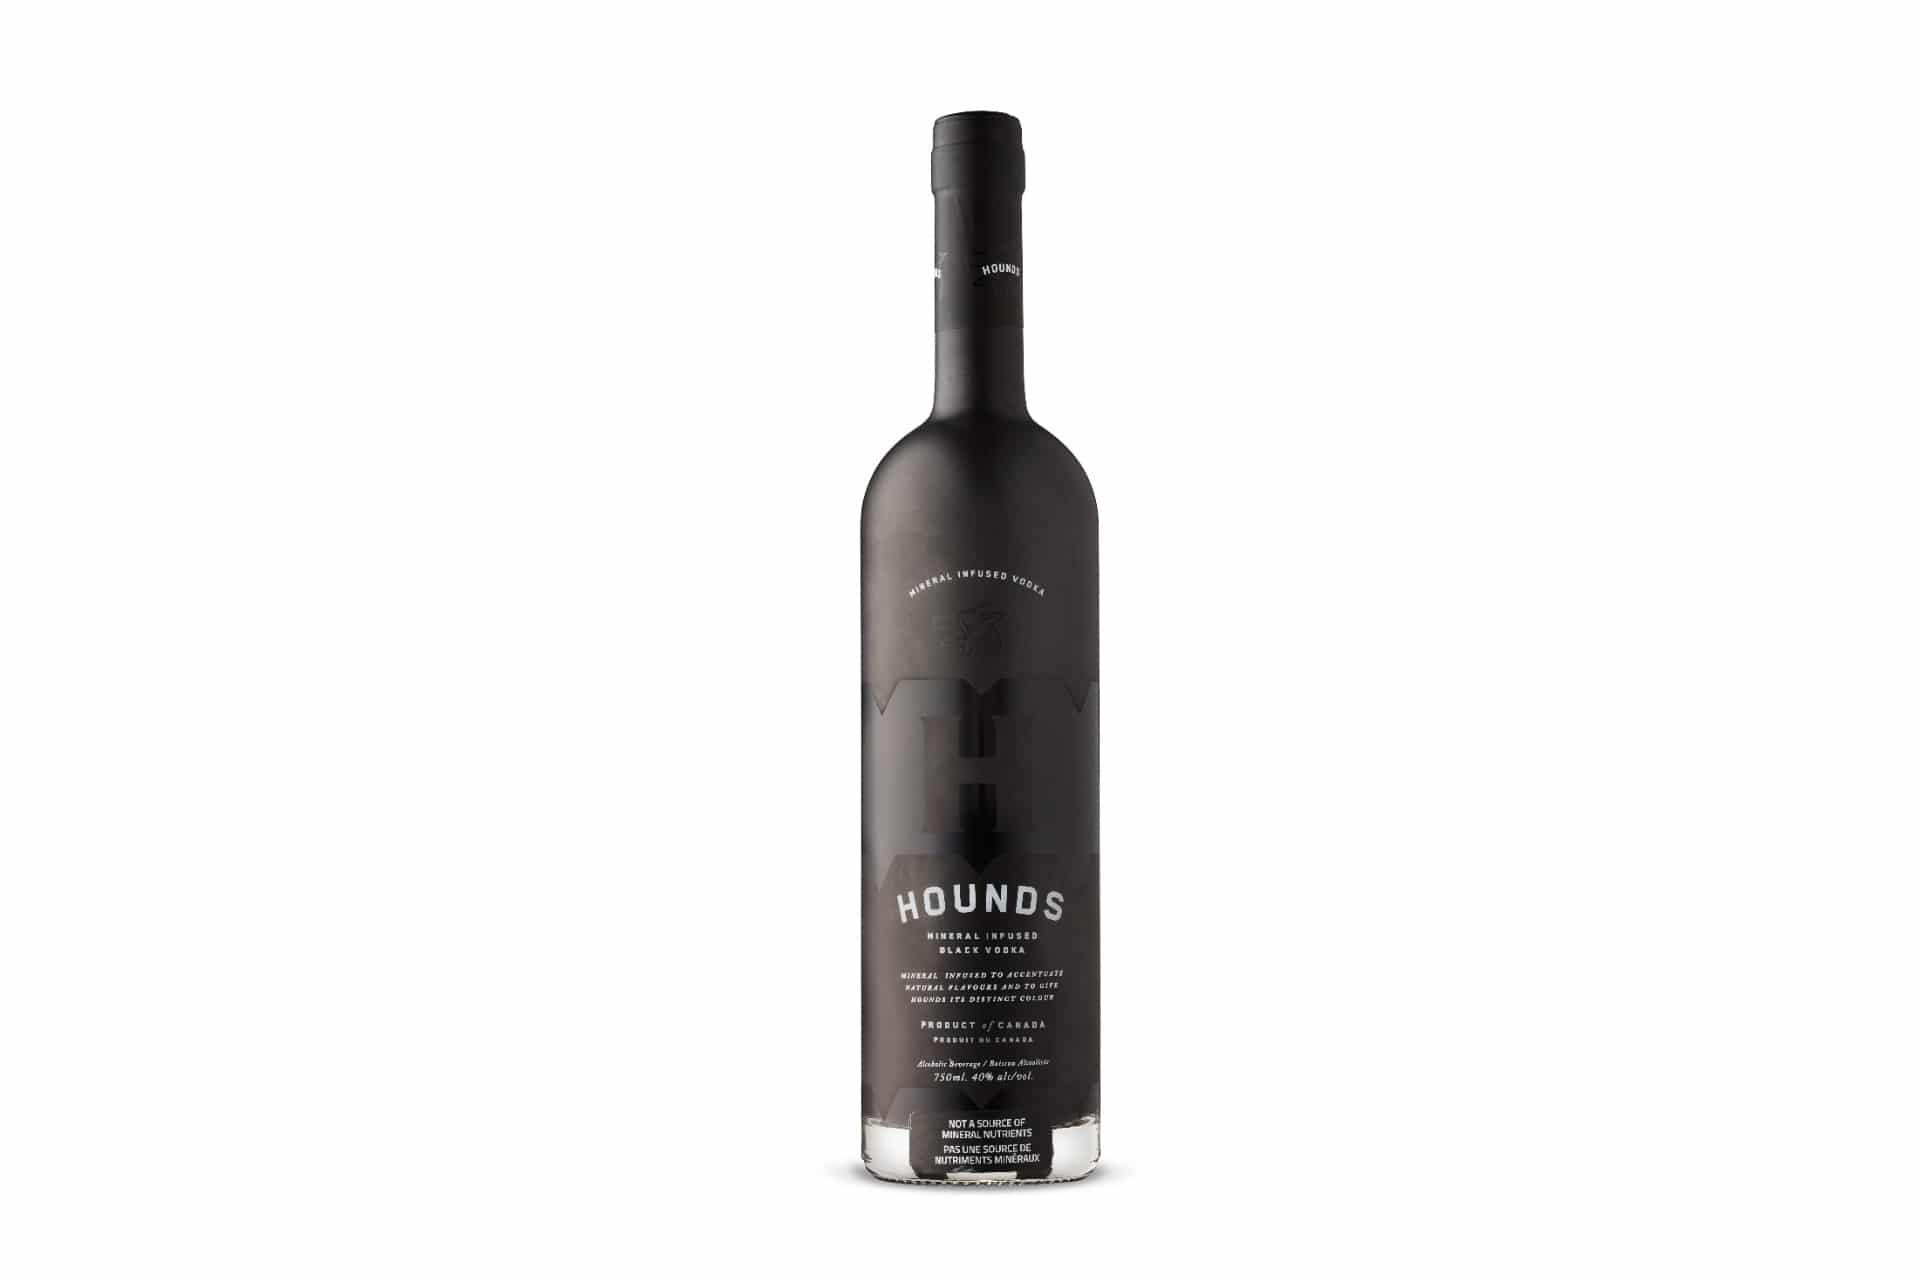 Black bottle of Hounds vodka